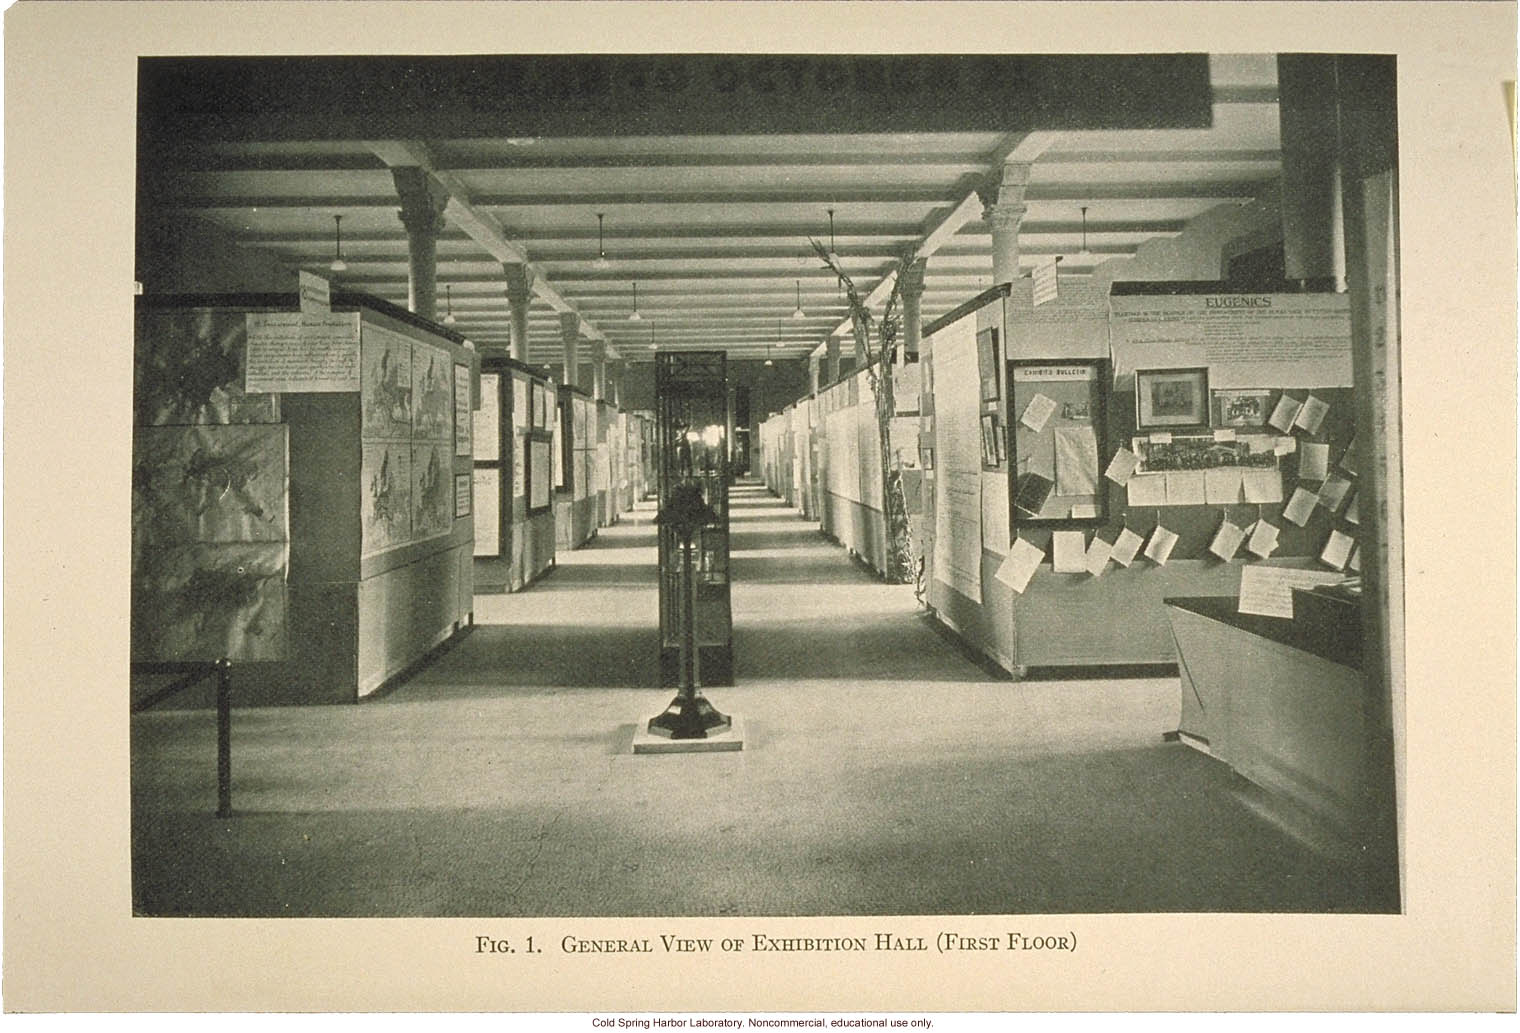 &quote;General view of exhibition hall (first floor)&quote;